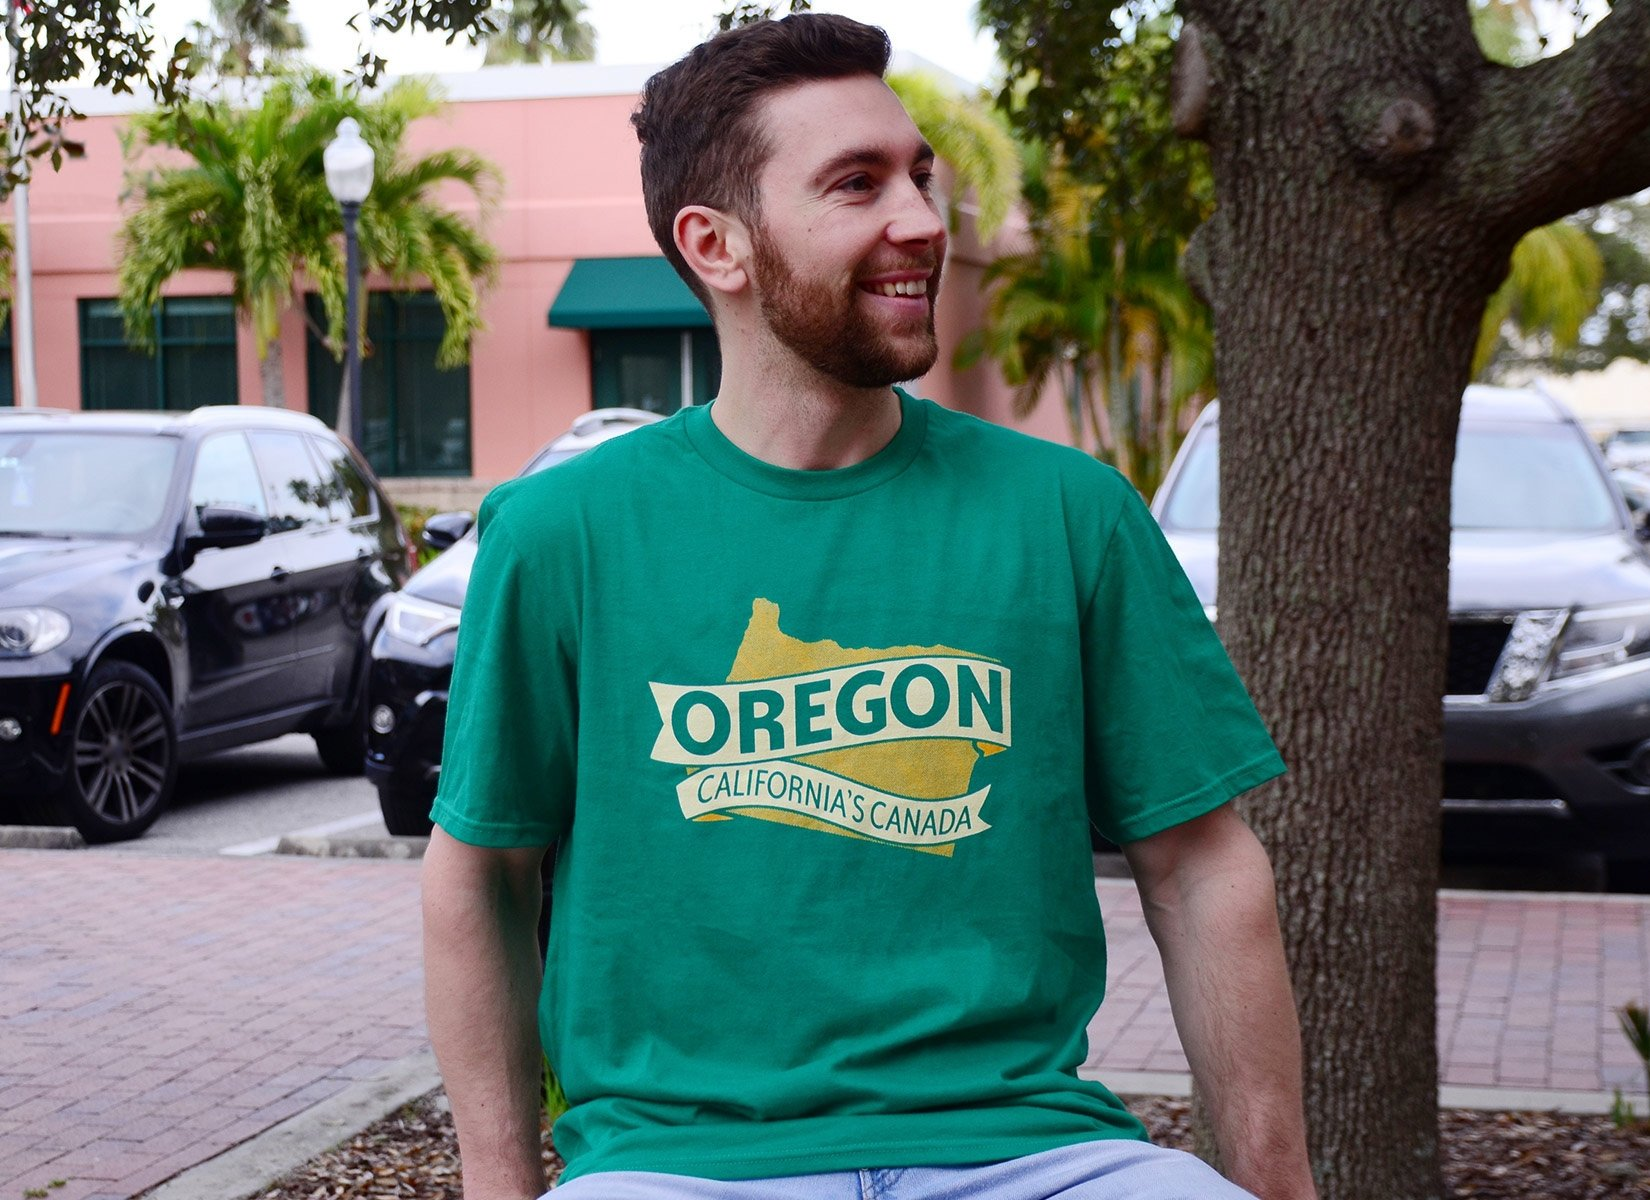 Oregon California's Canada on Mens T-Shirt